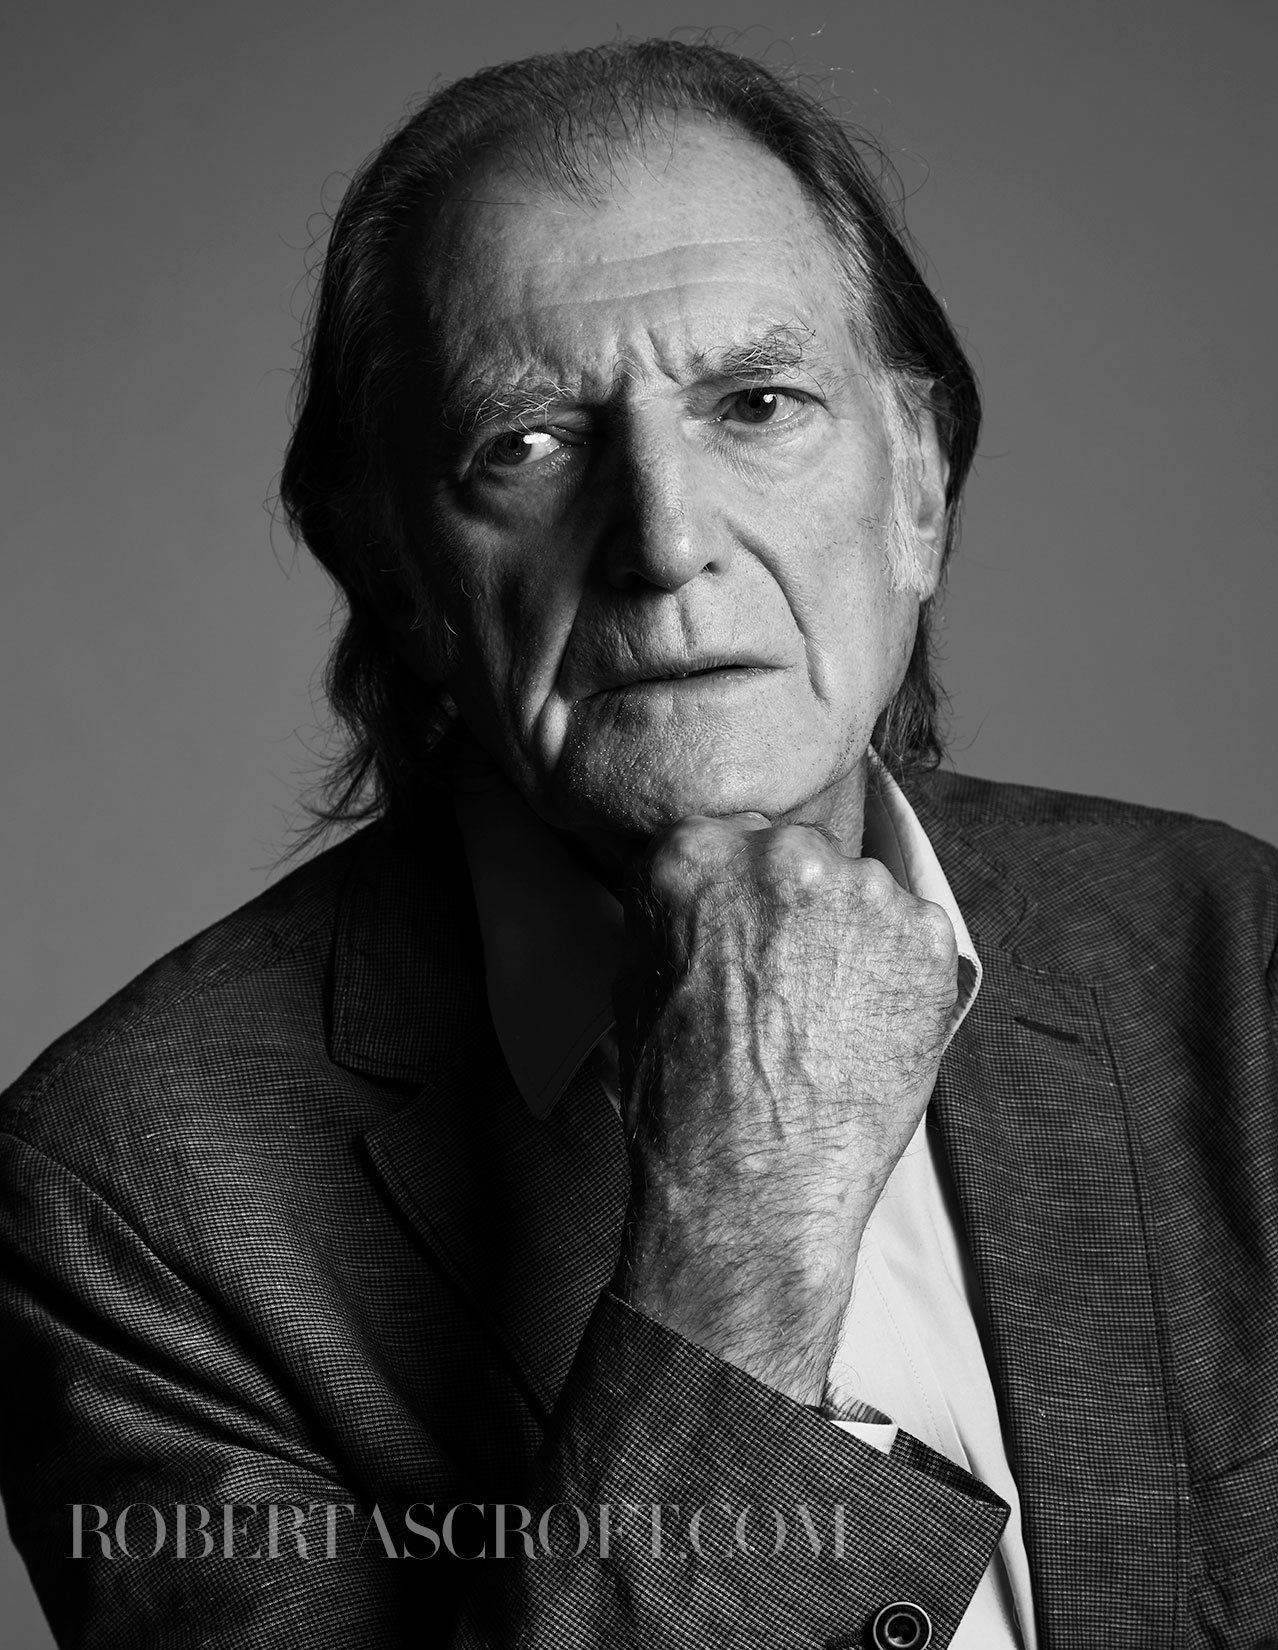 David-Bradley-by-Robert-Ascroft